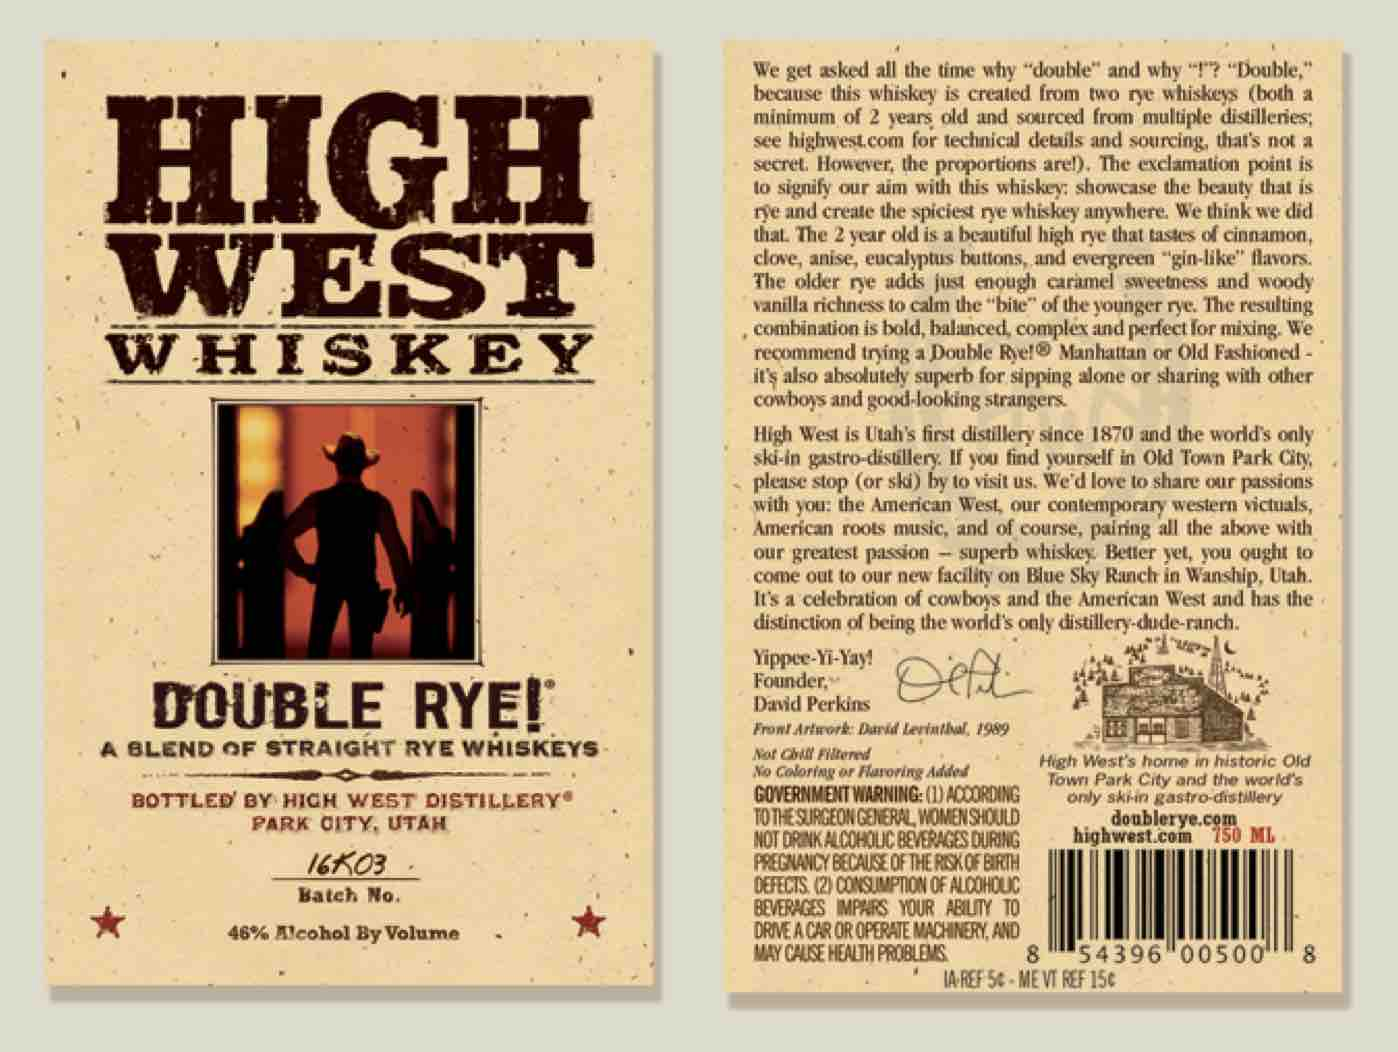 High West Whiskey Double Rye! Label